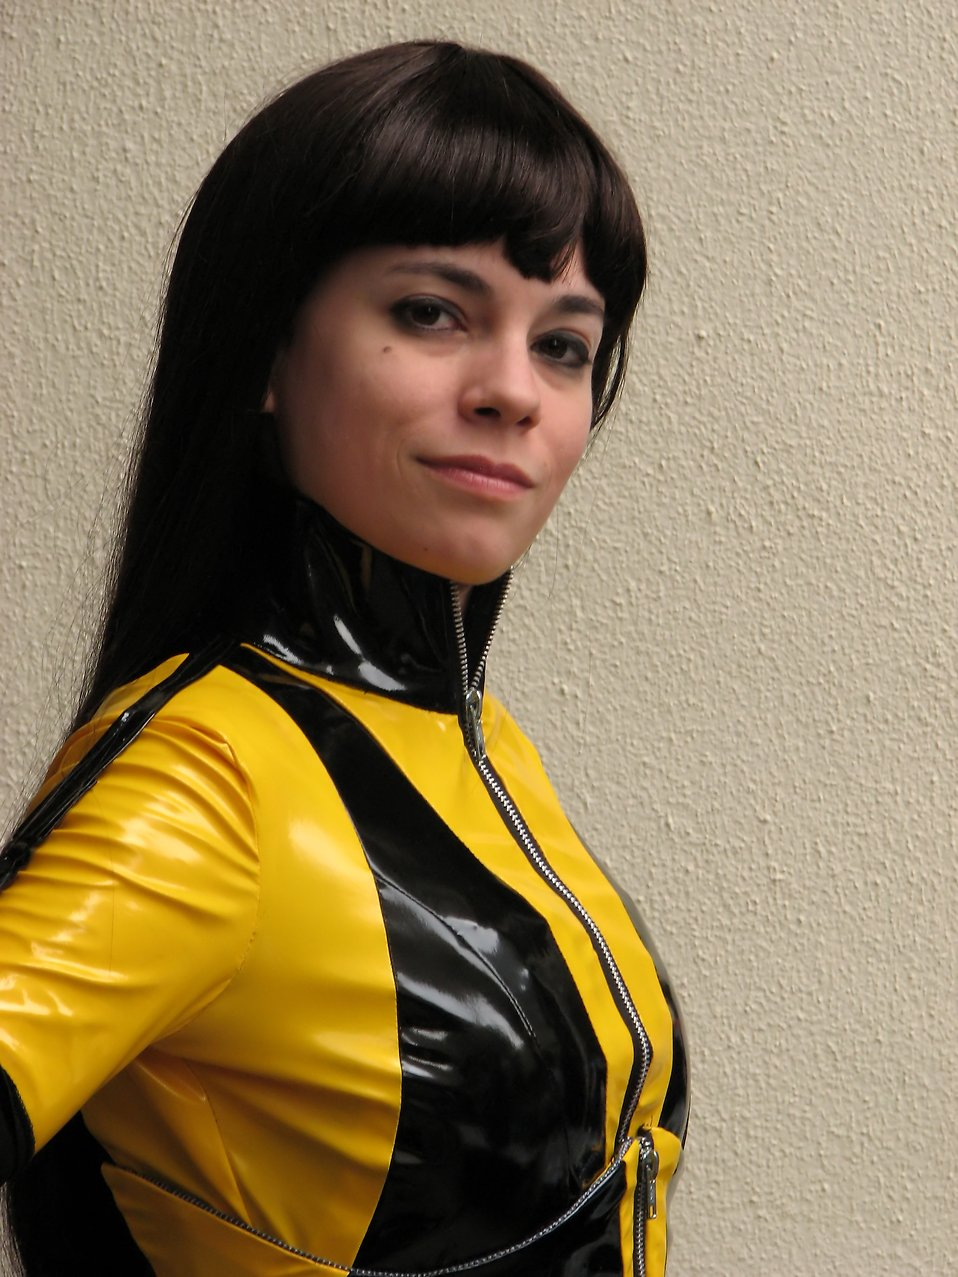 A beautiful woman in a Silk Spectre costume at Dragoncon 2009 in Atlanta, Georgia : Free Stock Photo